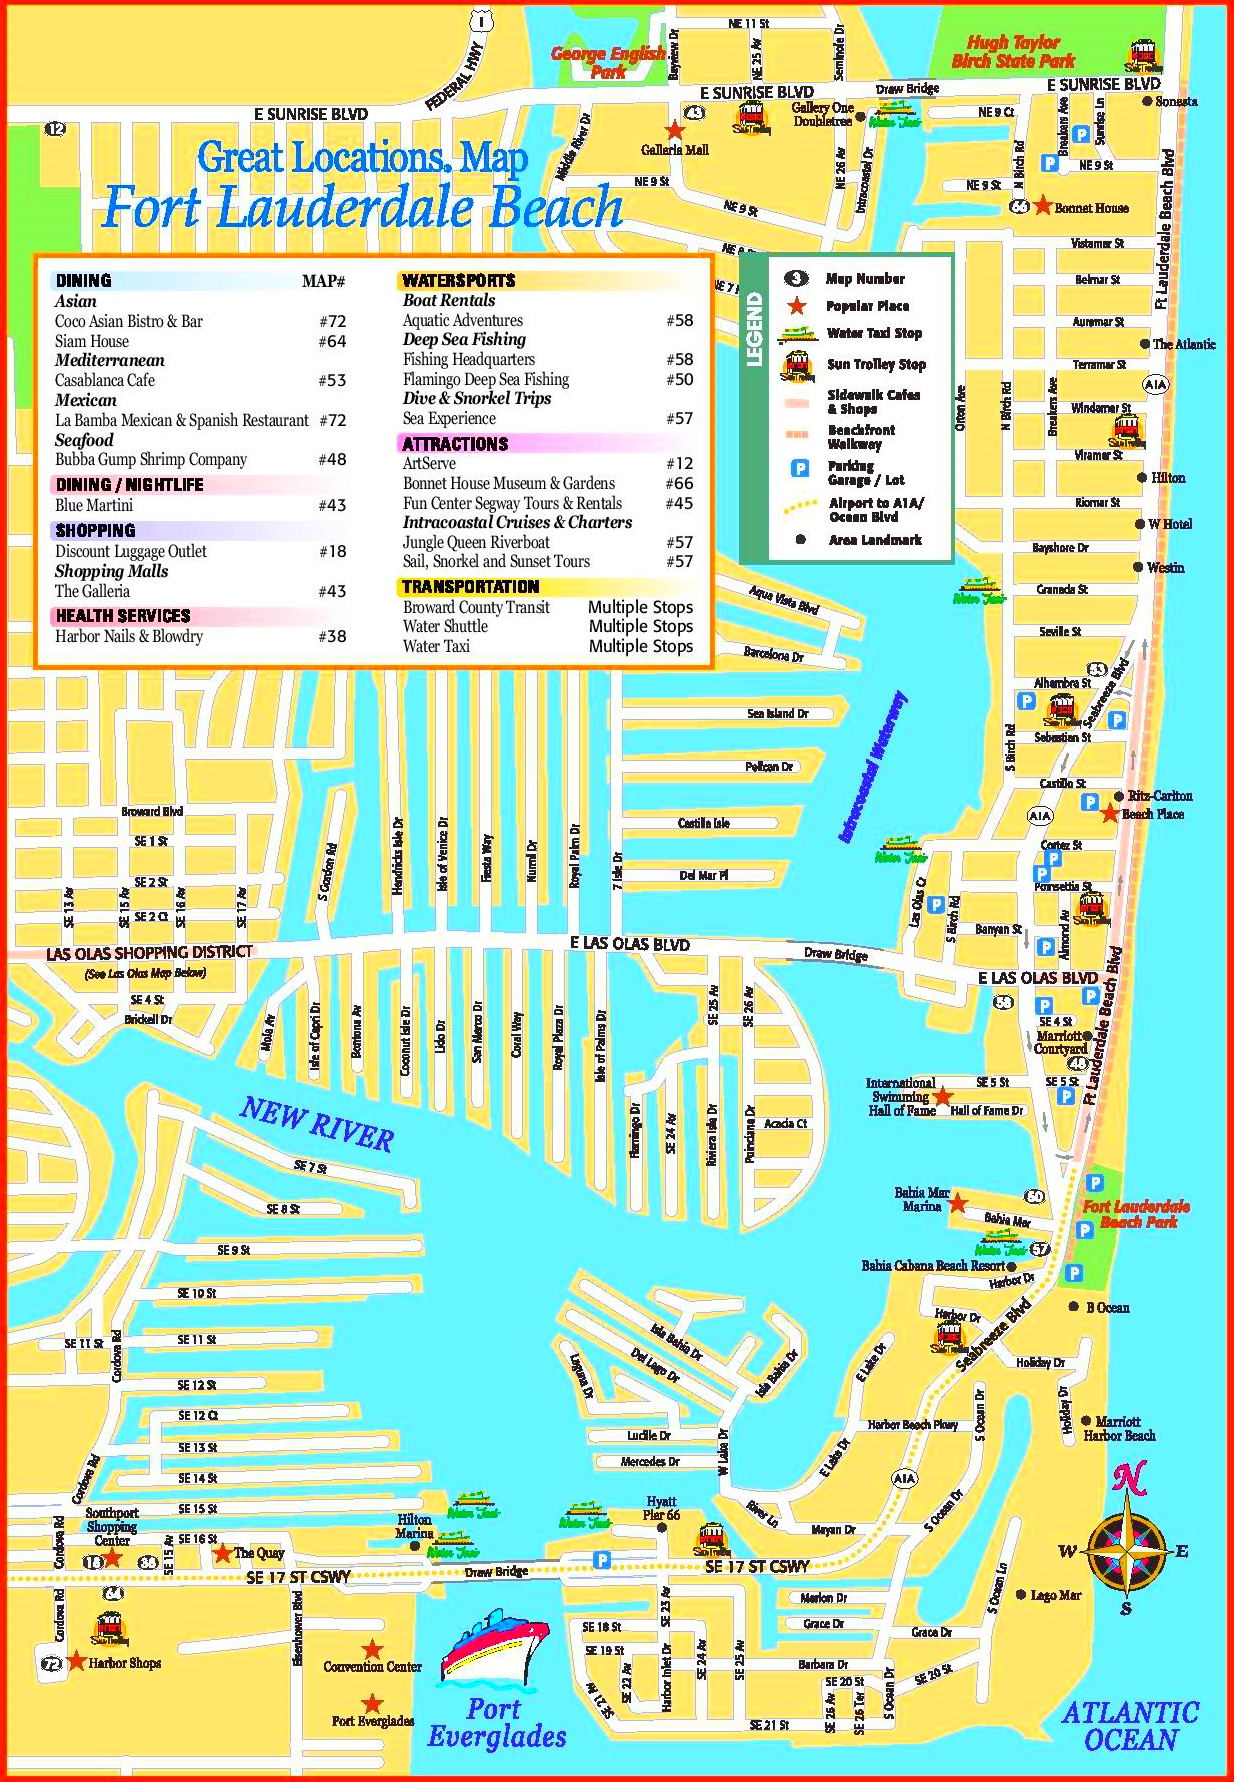 Fort Lauderdale Beach tourist map